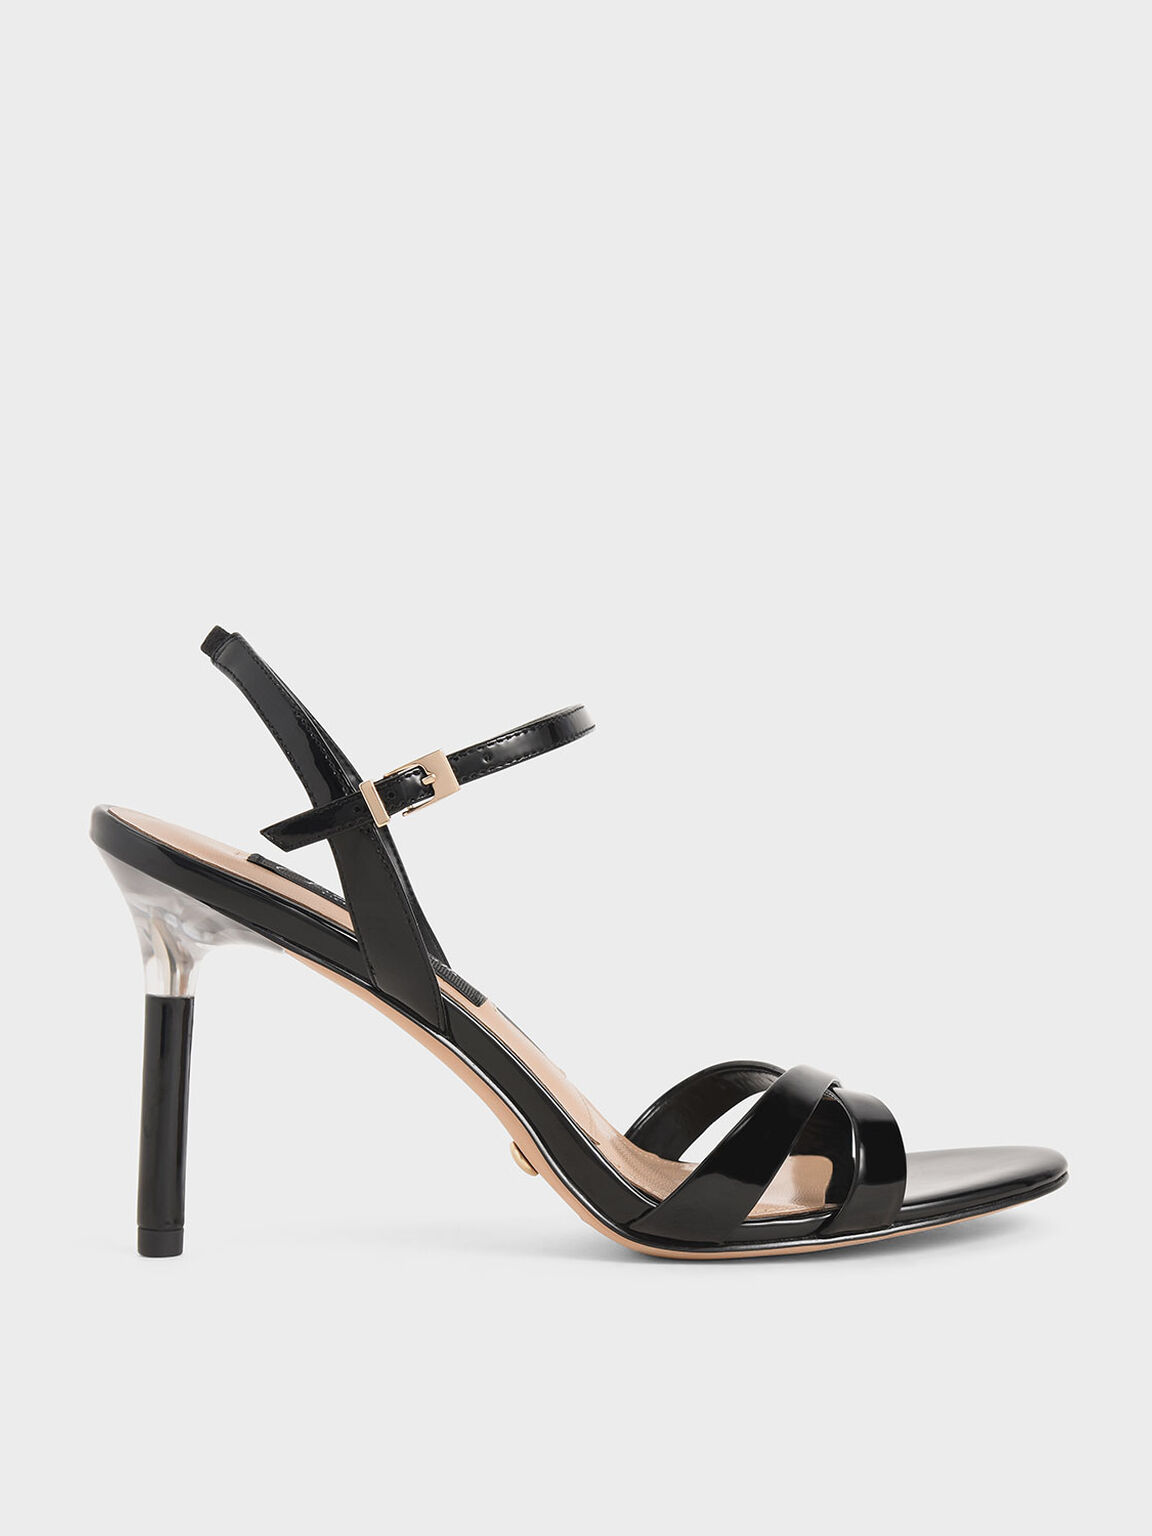 Patent Leather Criss-Cross Heels, Black, hi-res